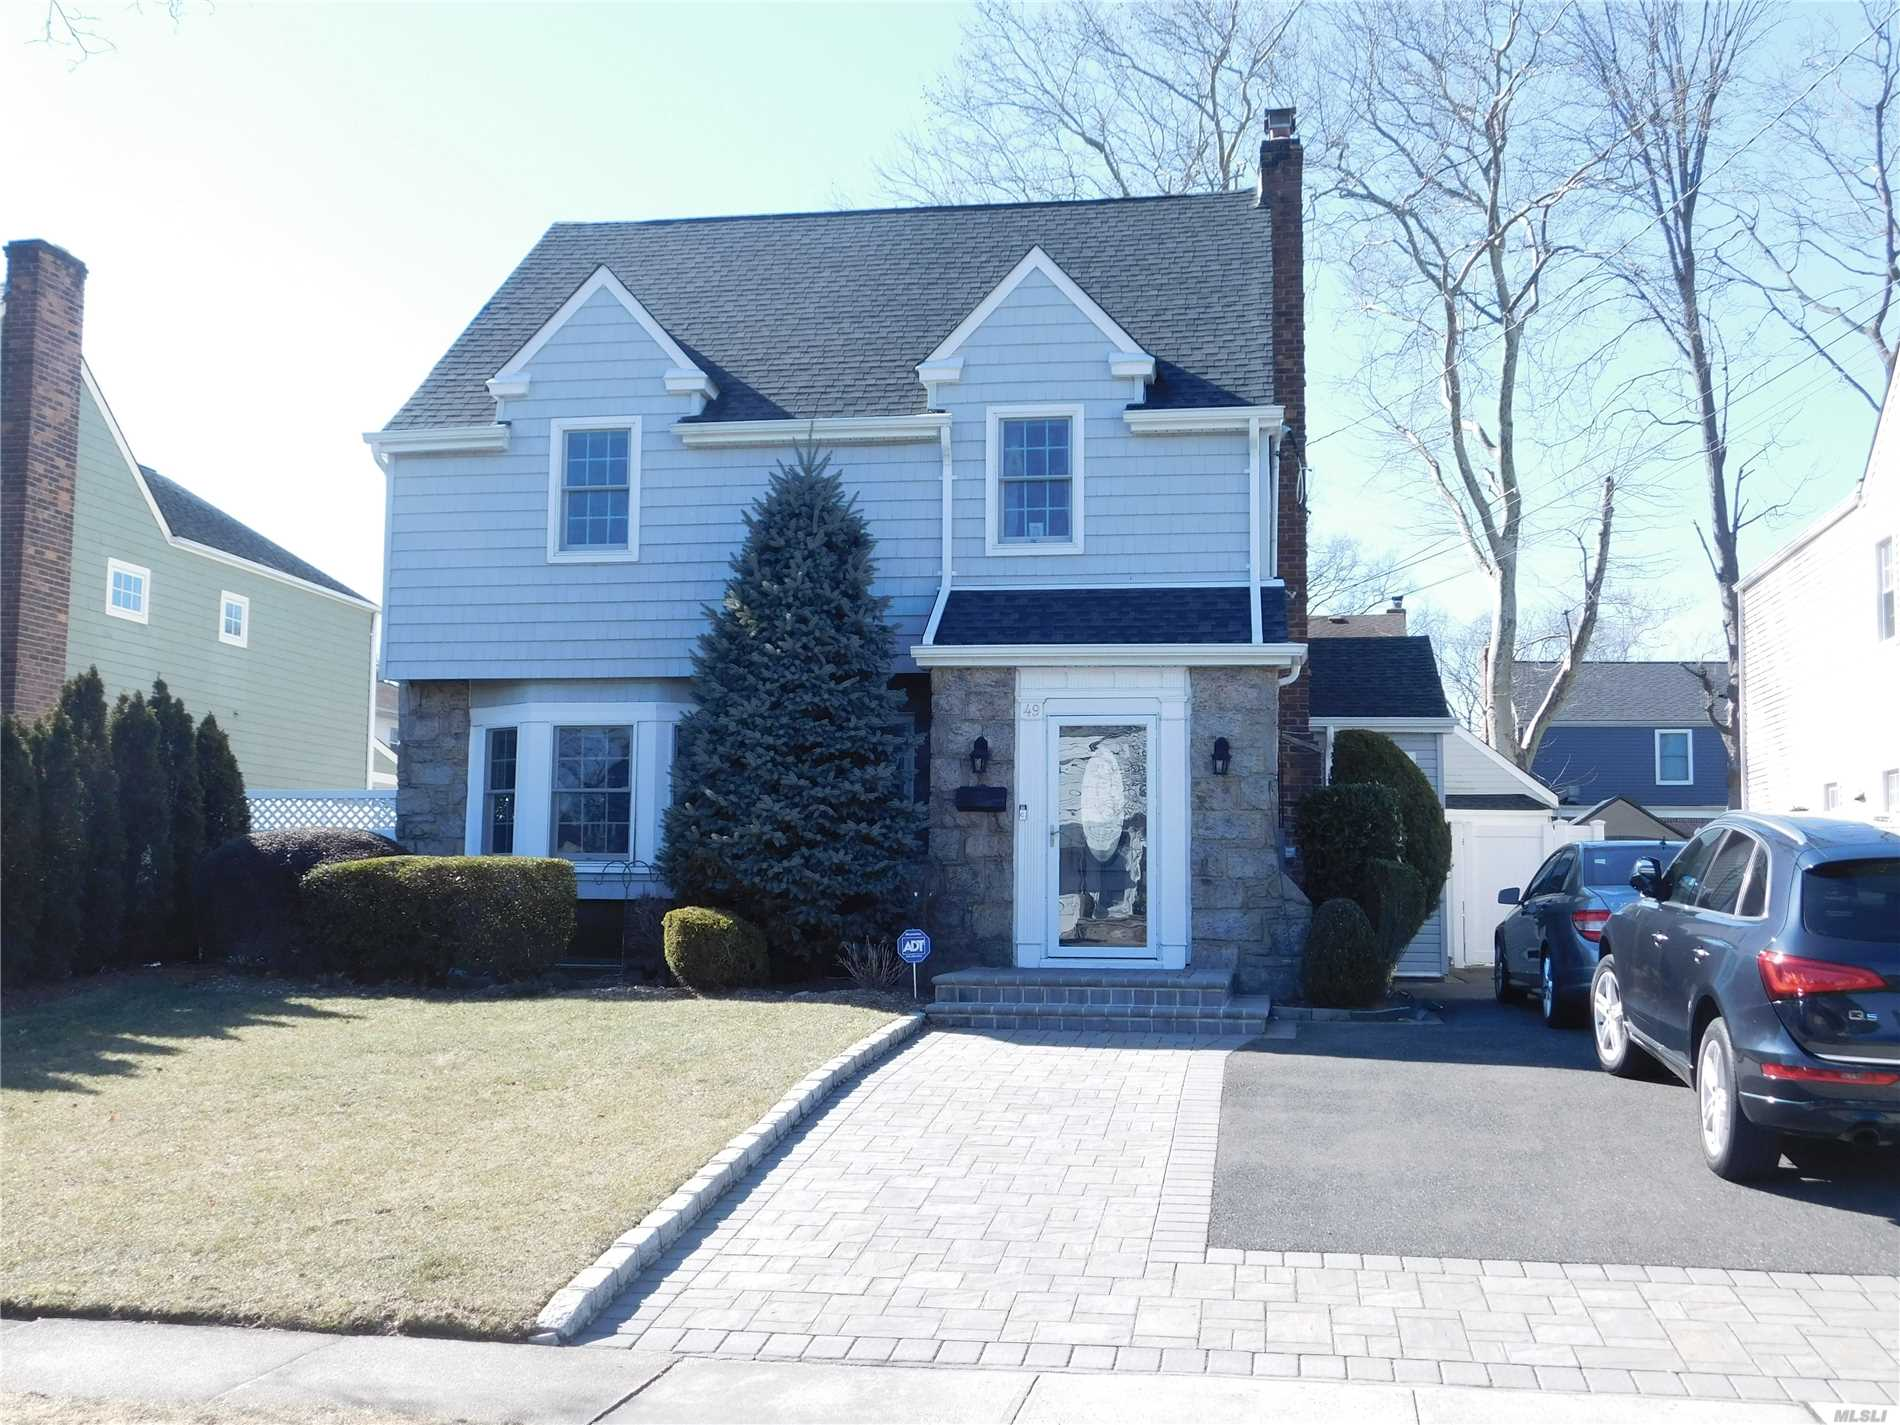 Large 2-Story Extension Added 5 Years Ago Including A New Quartz Eik, Den, 1/2 Bth, Office & Mbr Suite. Refinished Hdwd Floors, Newly Painted, Radiant Floors In Eik & 2 Baths. New Leaders/Gutters/Siding/Windows (5Years).Upgraded Igs System, New Security & Smoke Alarm, New Stoop & Driveway. New Generator Hookup.